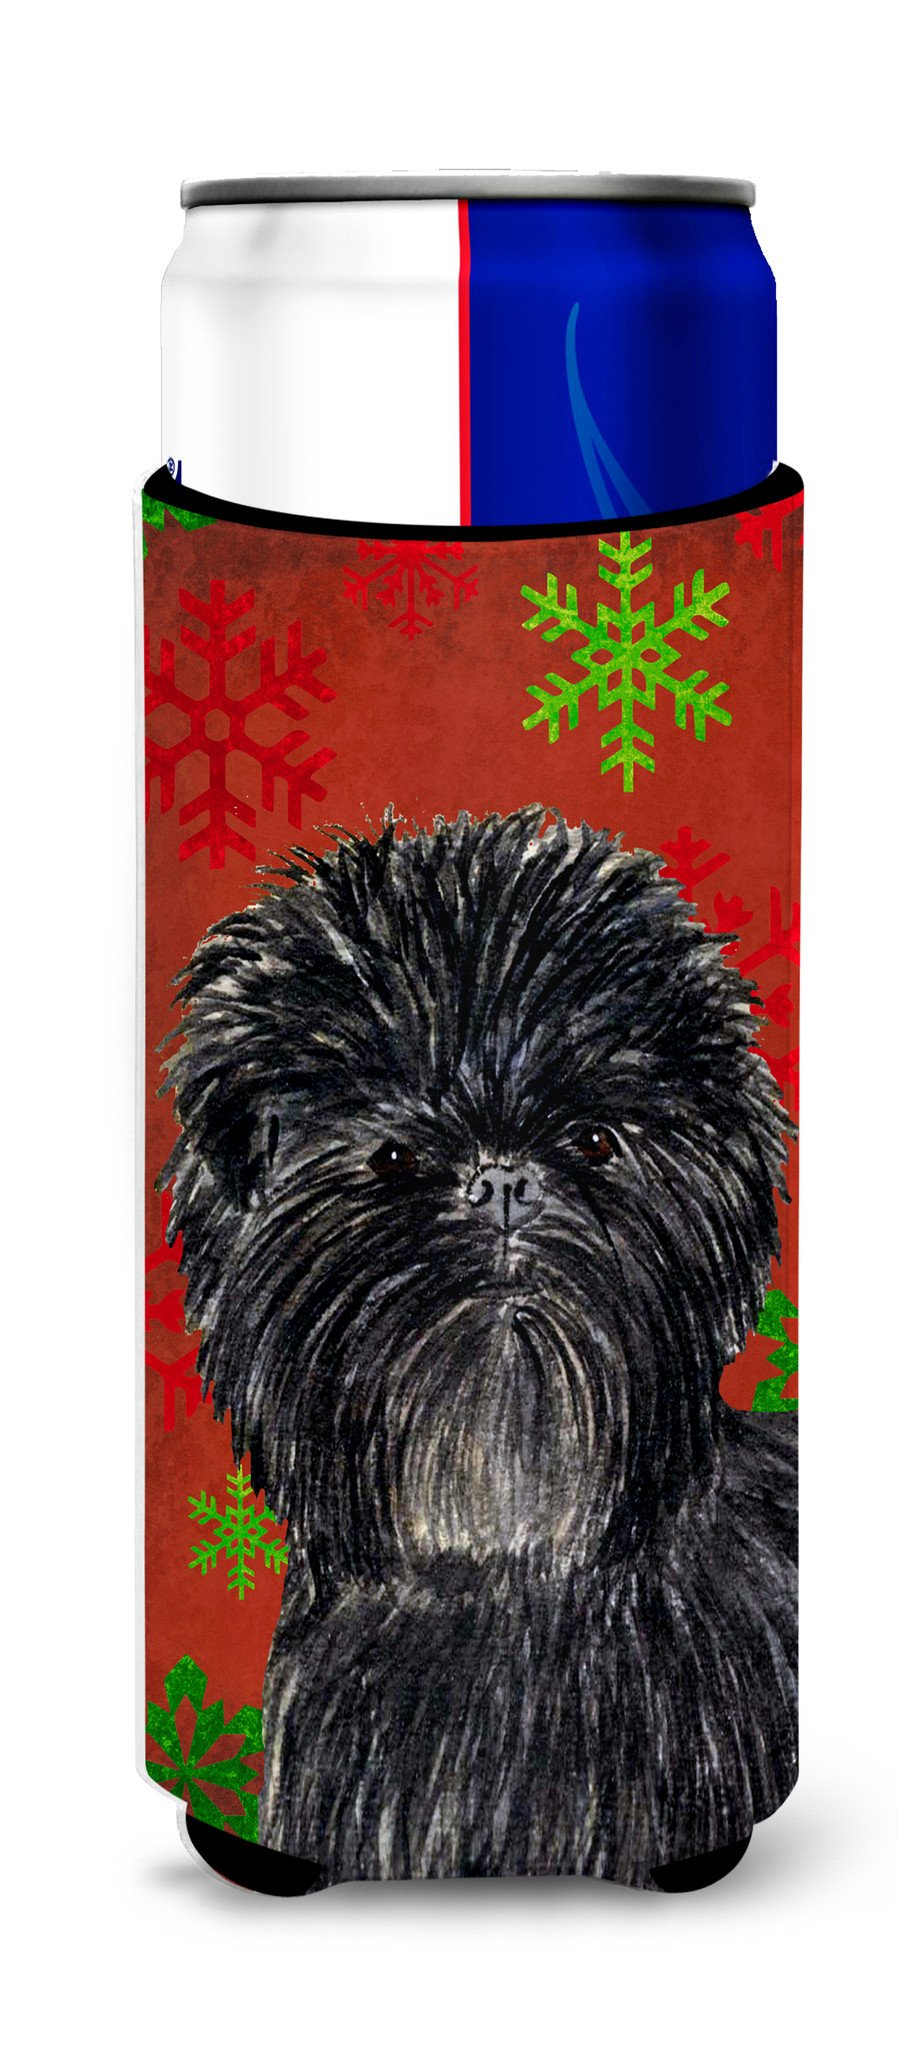 Affenpinscher Red Green Snowflakes Christmas Ultra Beverage Insulators for slim cans SS4718MUK by Caroline's Treasures